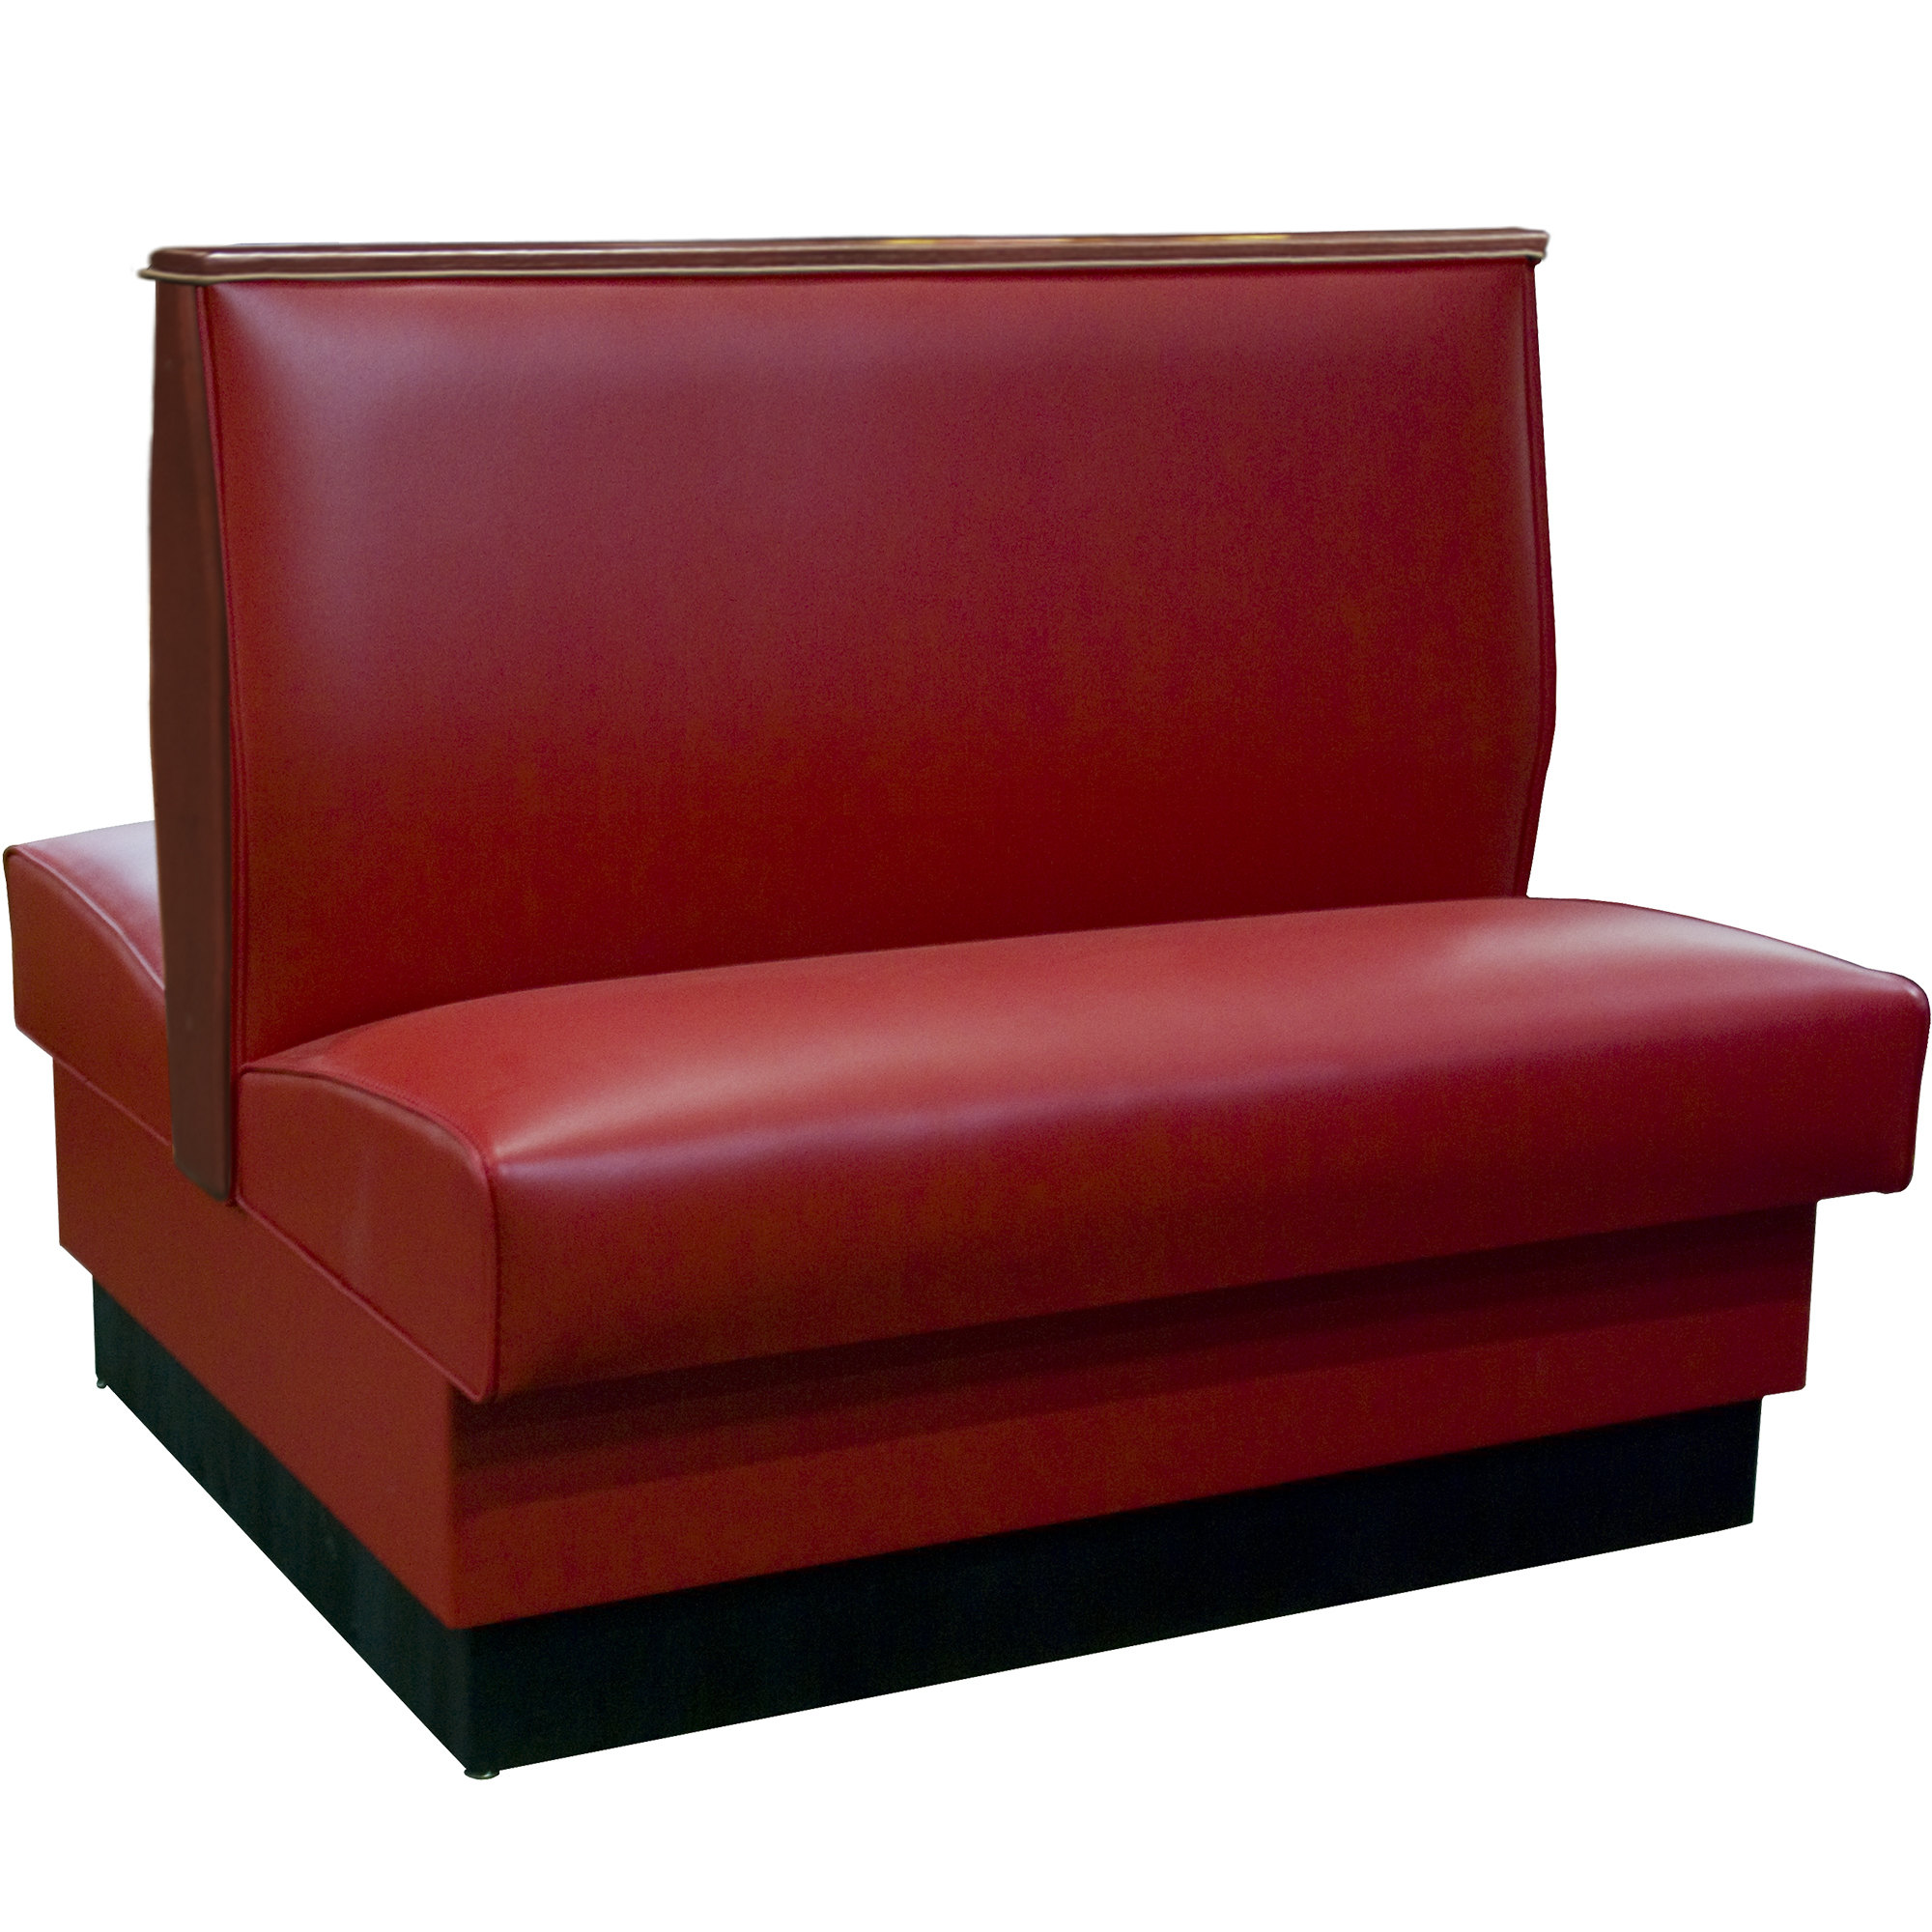 "#34 - 36""H Sangria Plain Double Back Fully Upholstered Booth with Wood End and Top Caps"